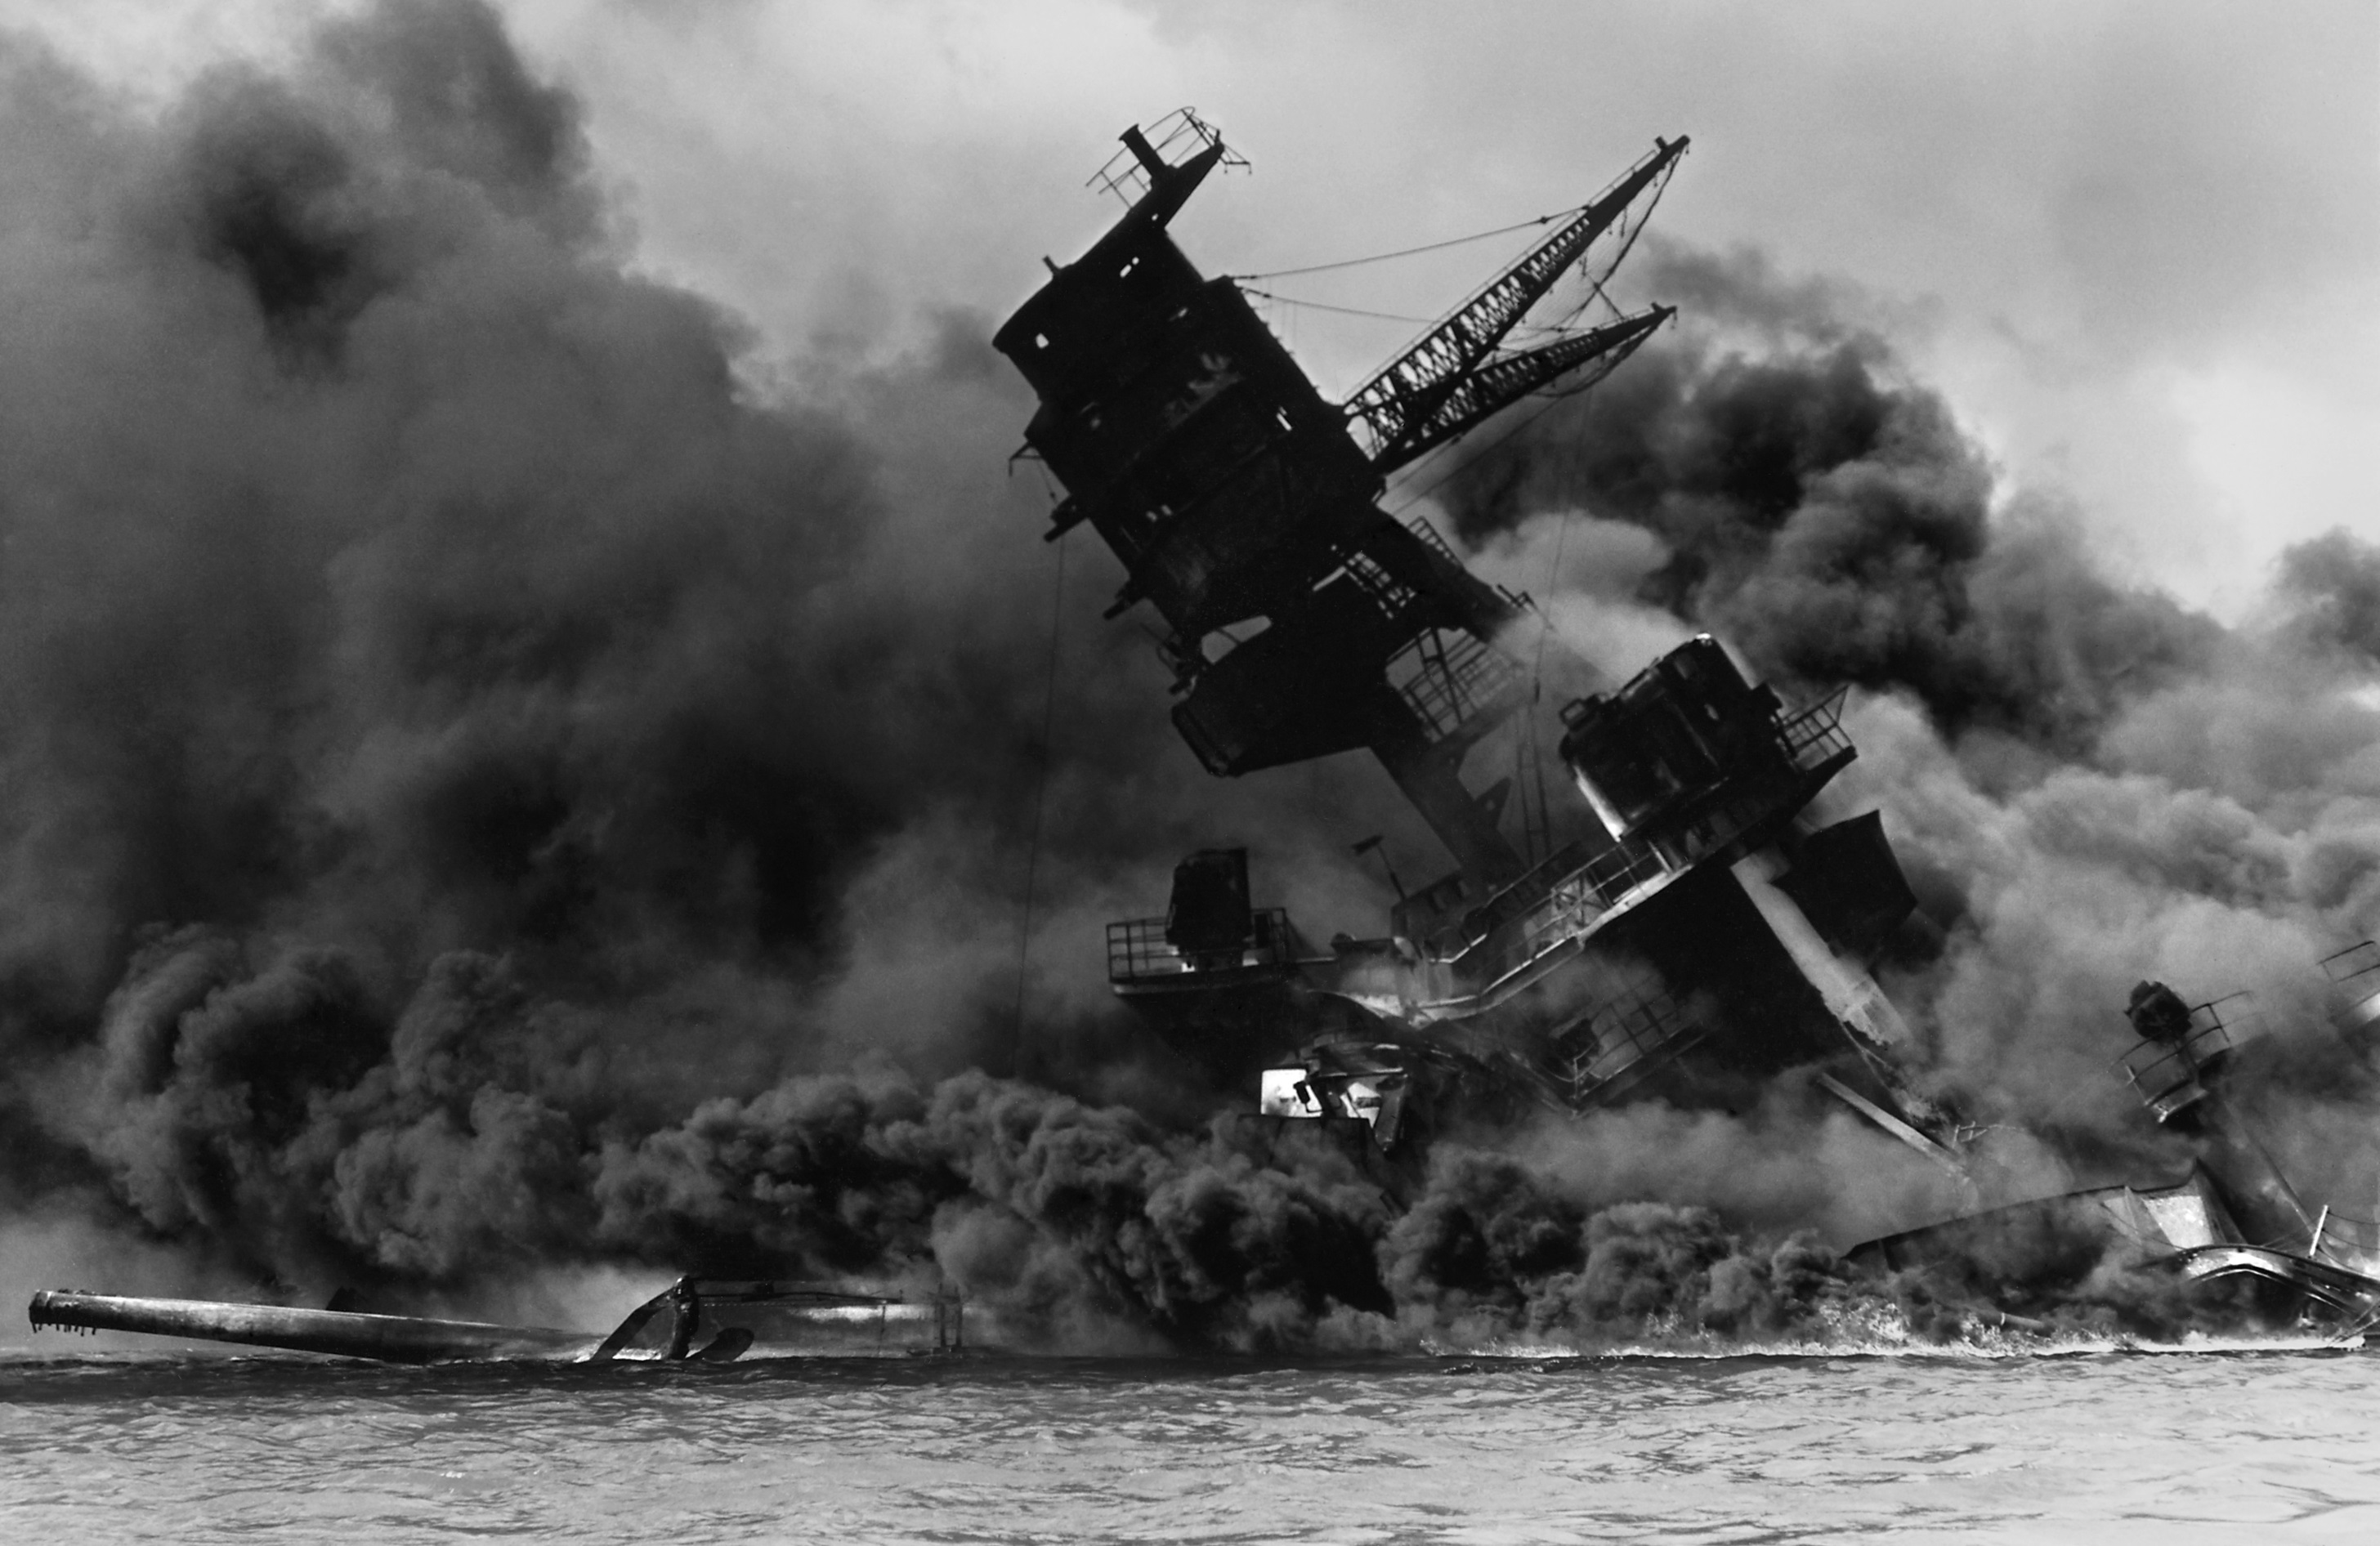 Could Japan Have Won World War II by NOT Attacking Pearl Harbor?